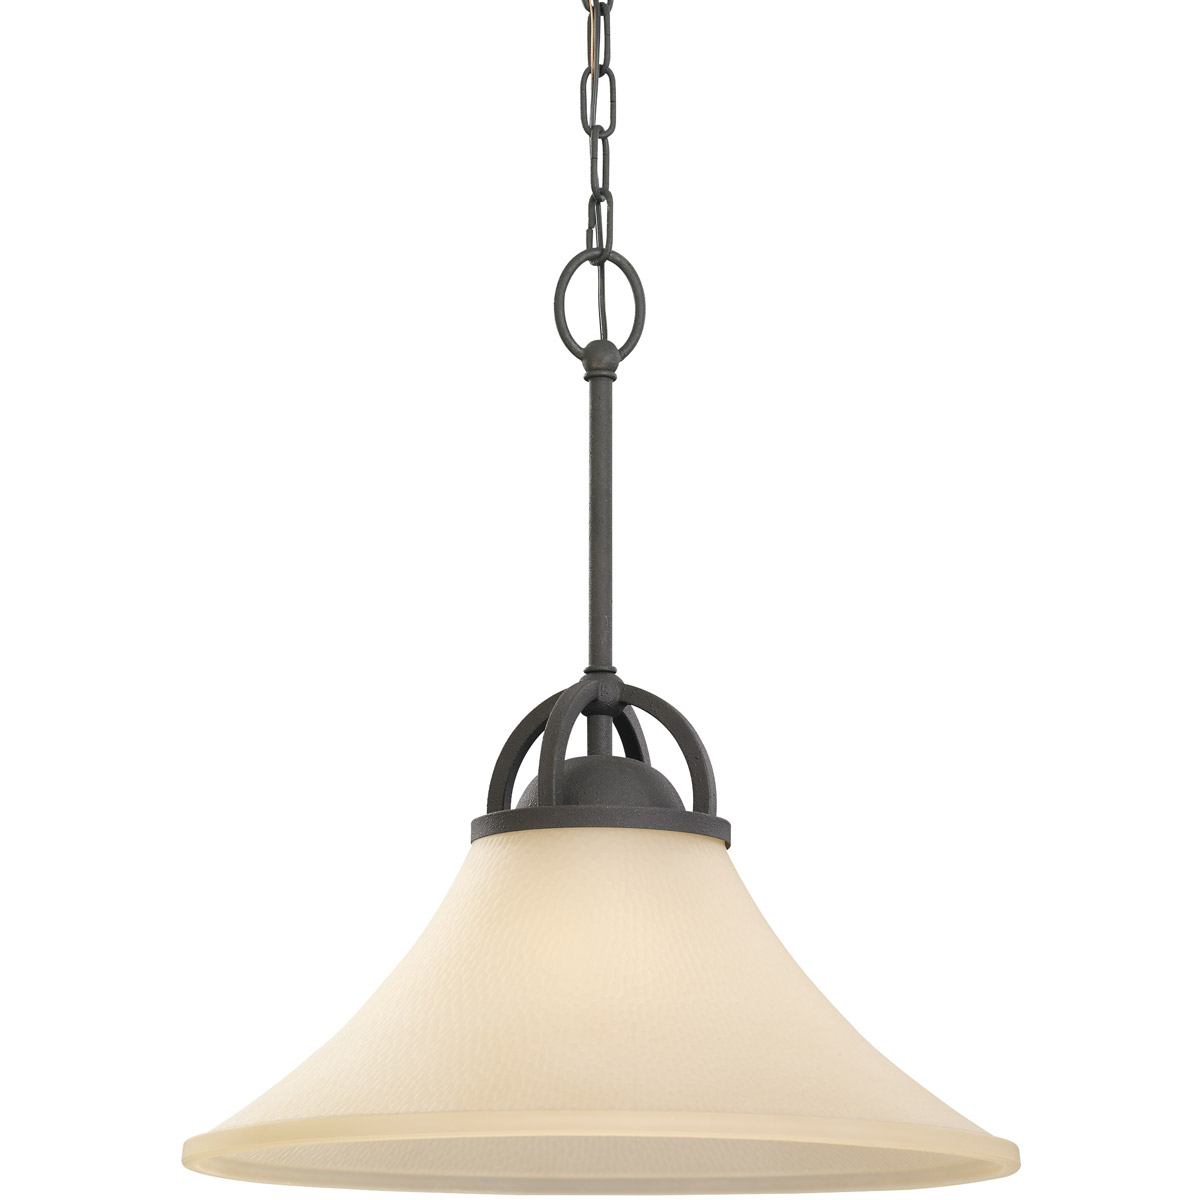 Sea Gull Lighting Somerton 1 Light Pendant in Blacksmith 65375-839